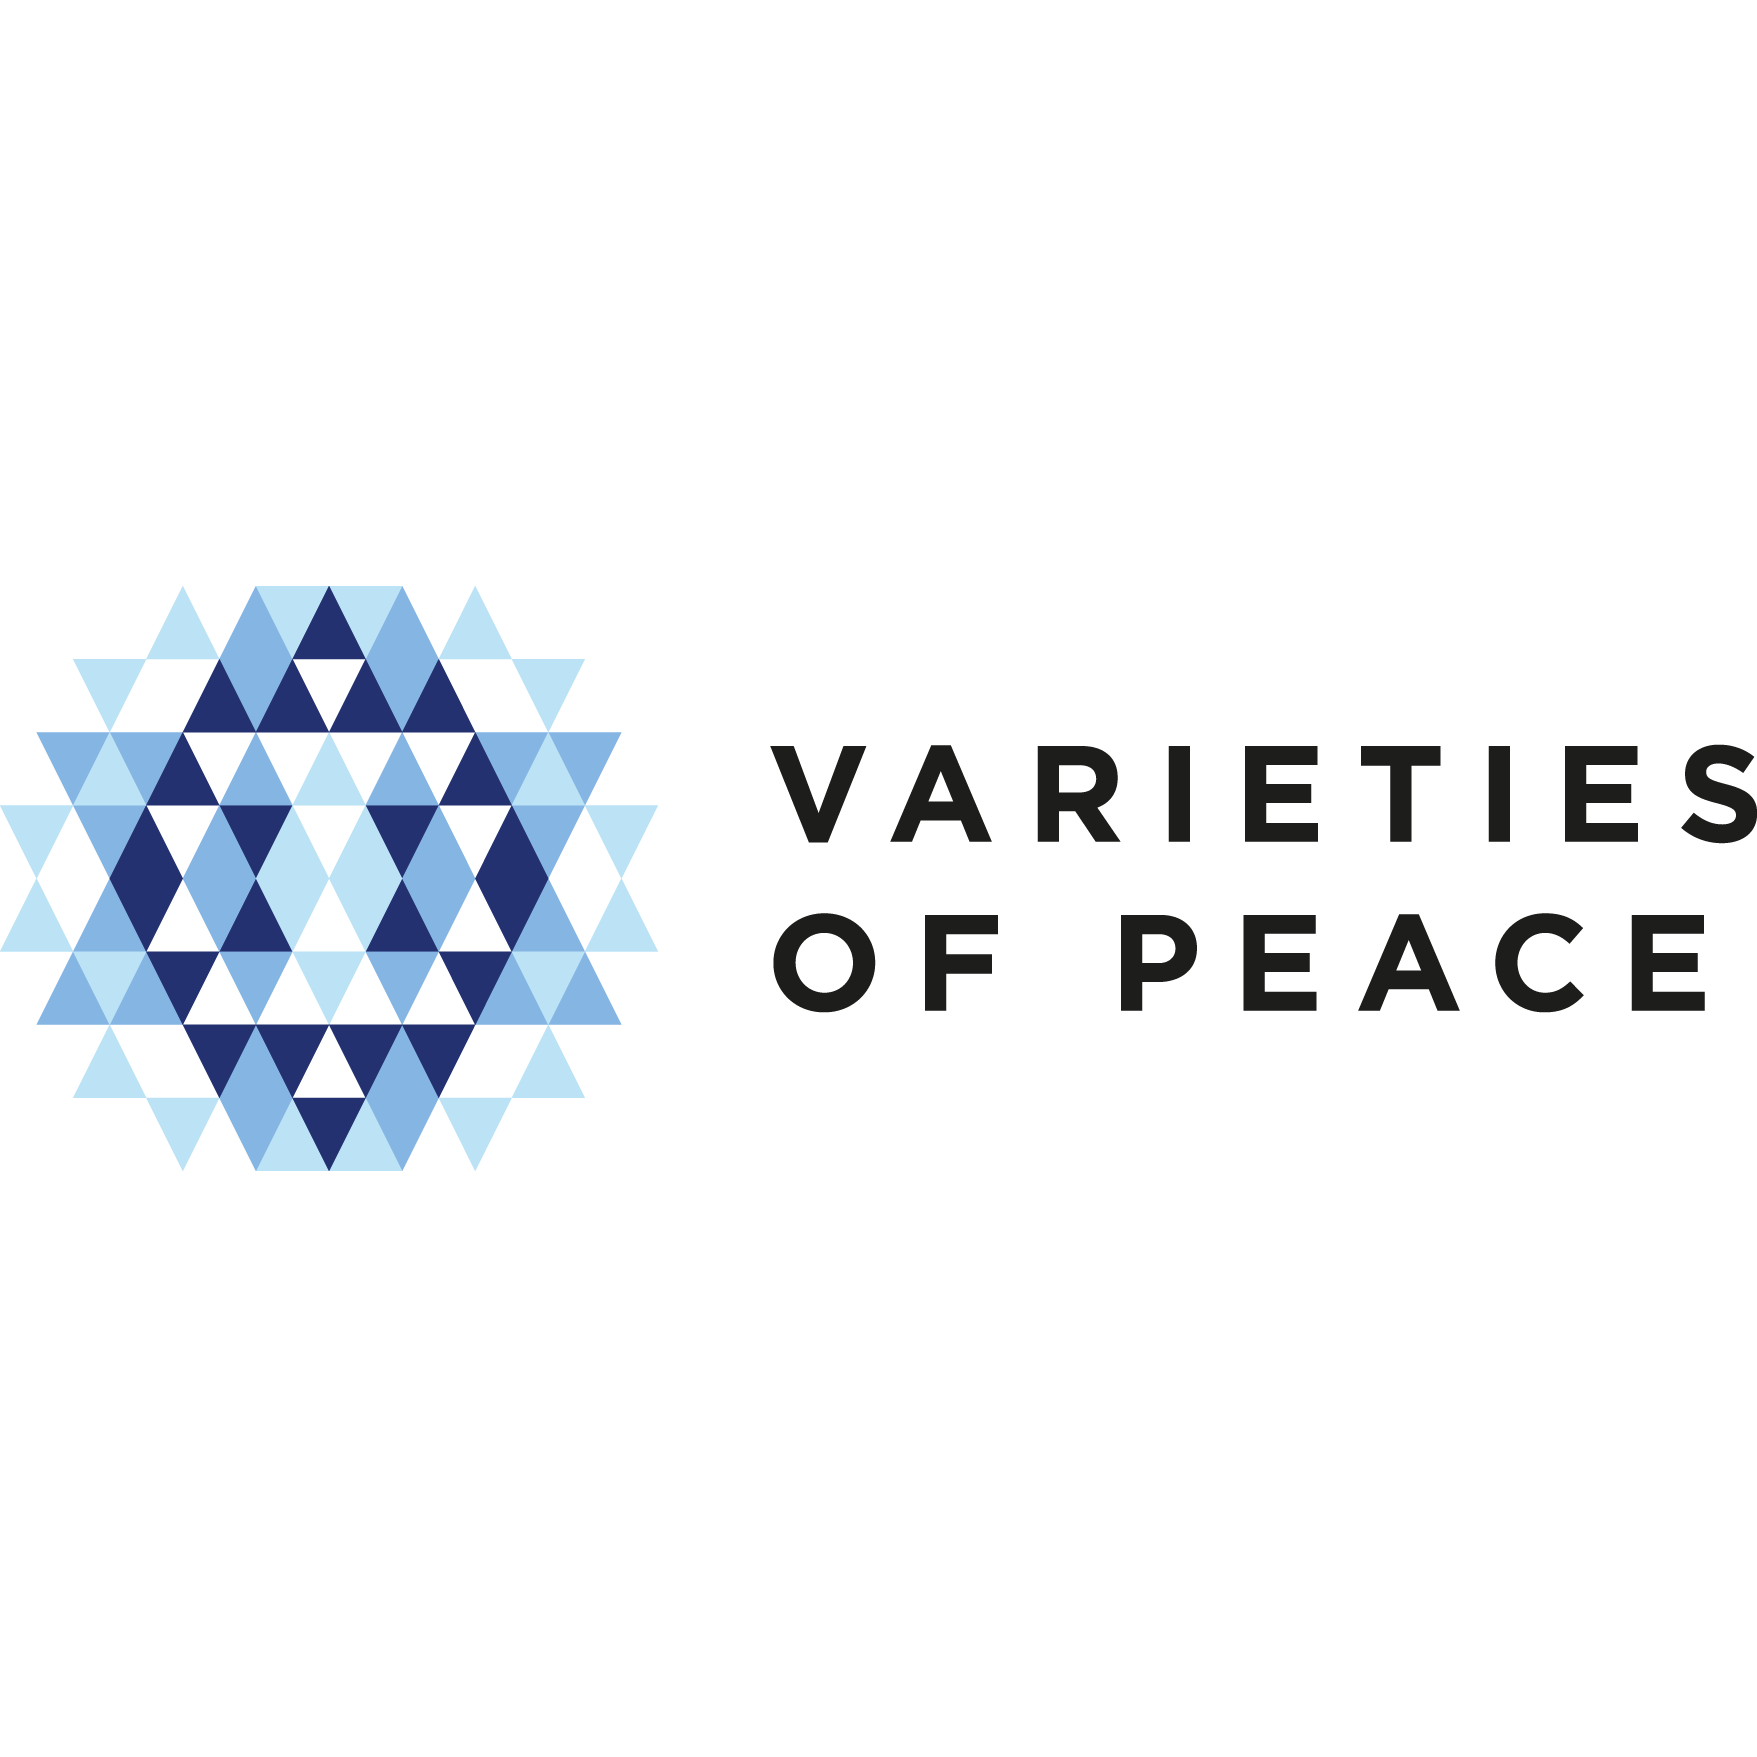 Varieties of Peace logotypy